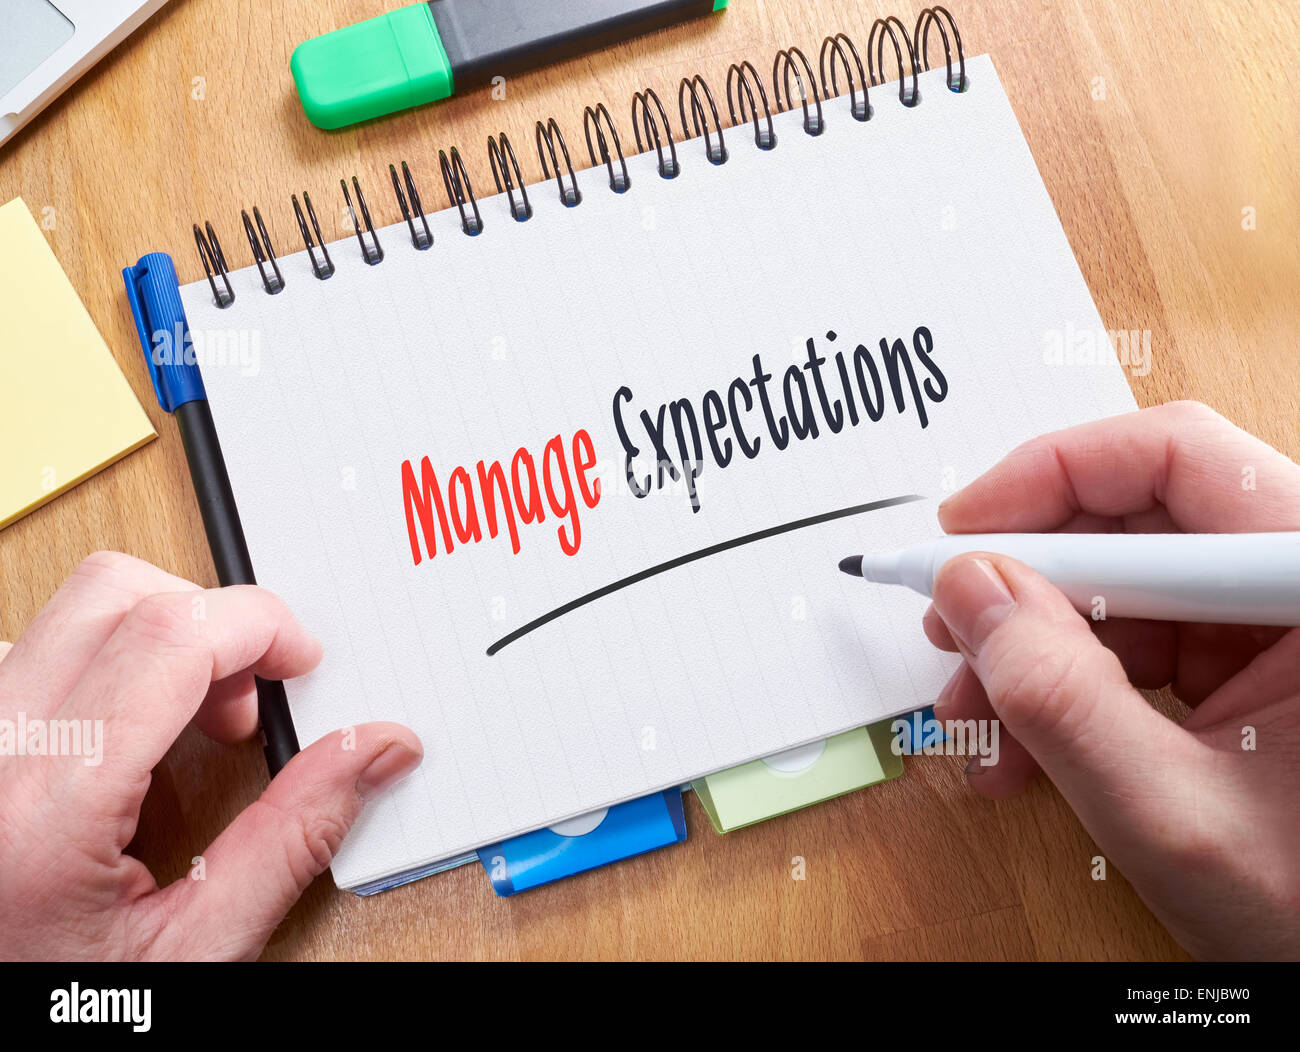 A businessman writing the words, Manage Expectations, on a note pad. - Stock Image